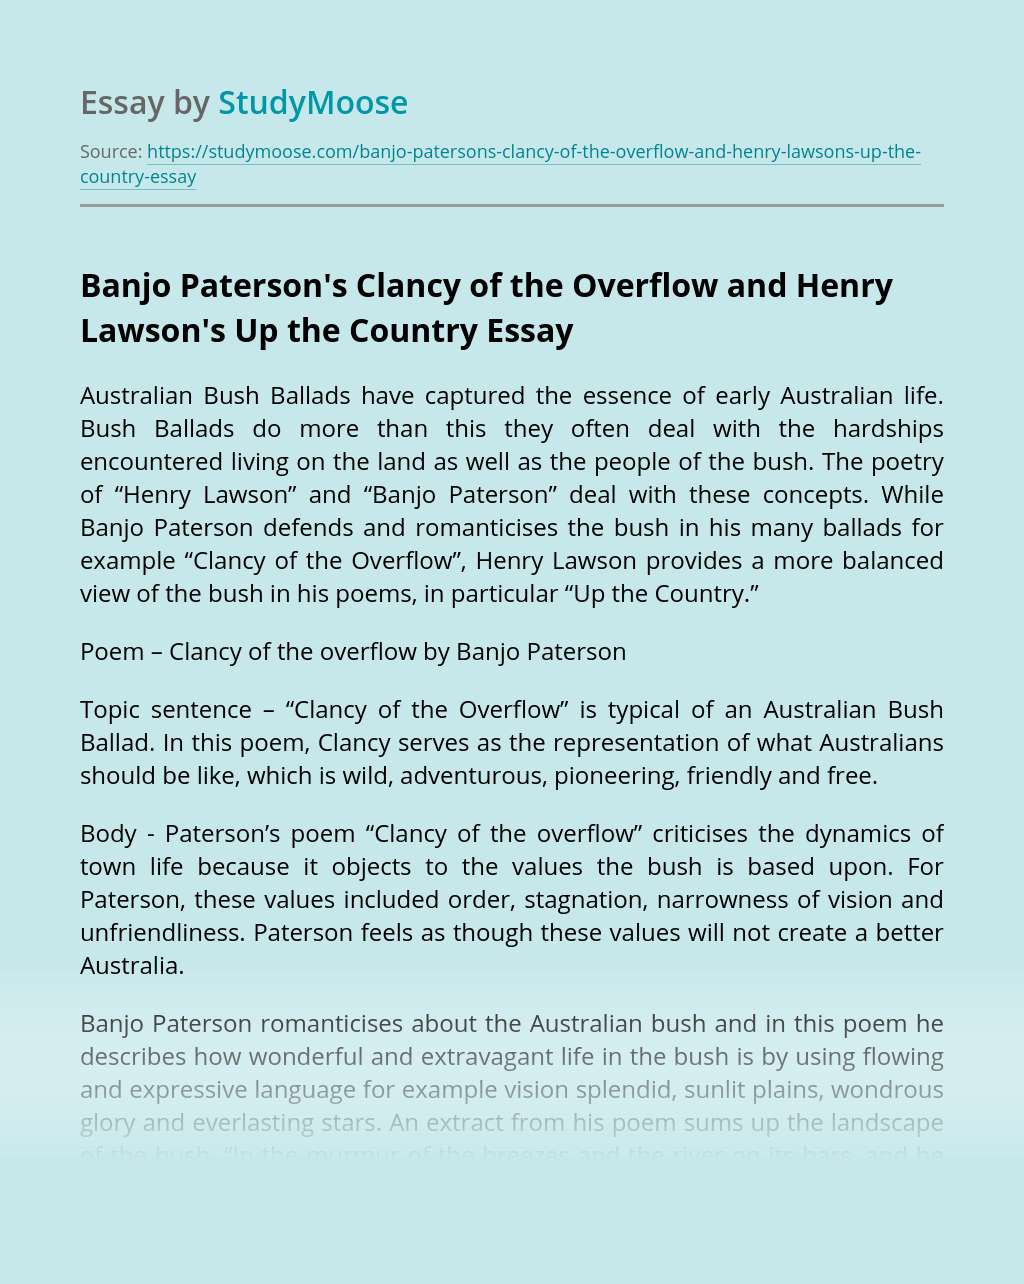 Banjo Paterson's Clancy of the Overflow and Henry Lawson's Up the Country